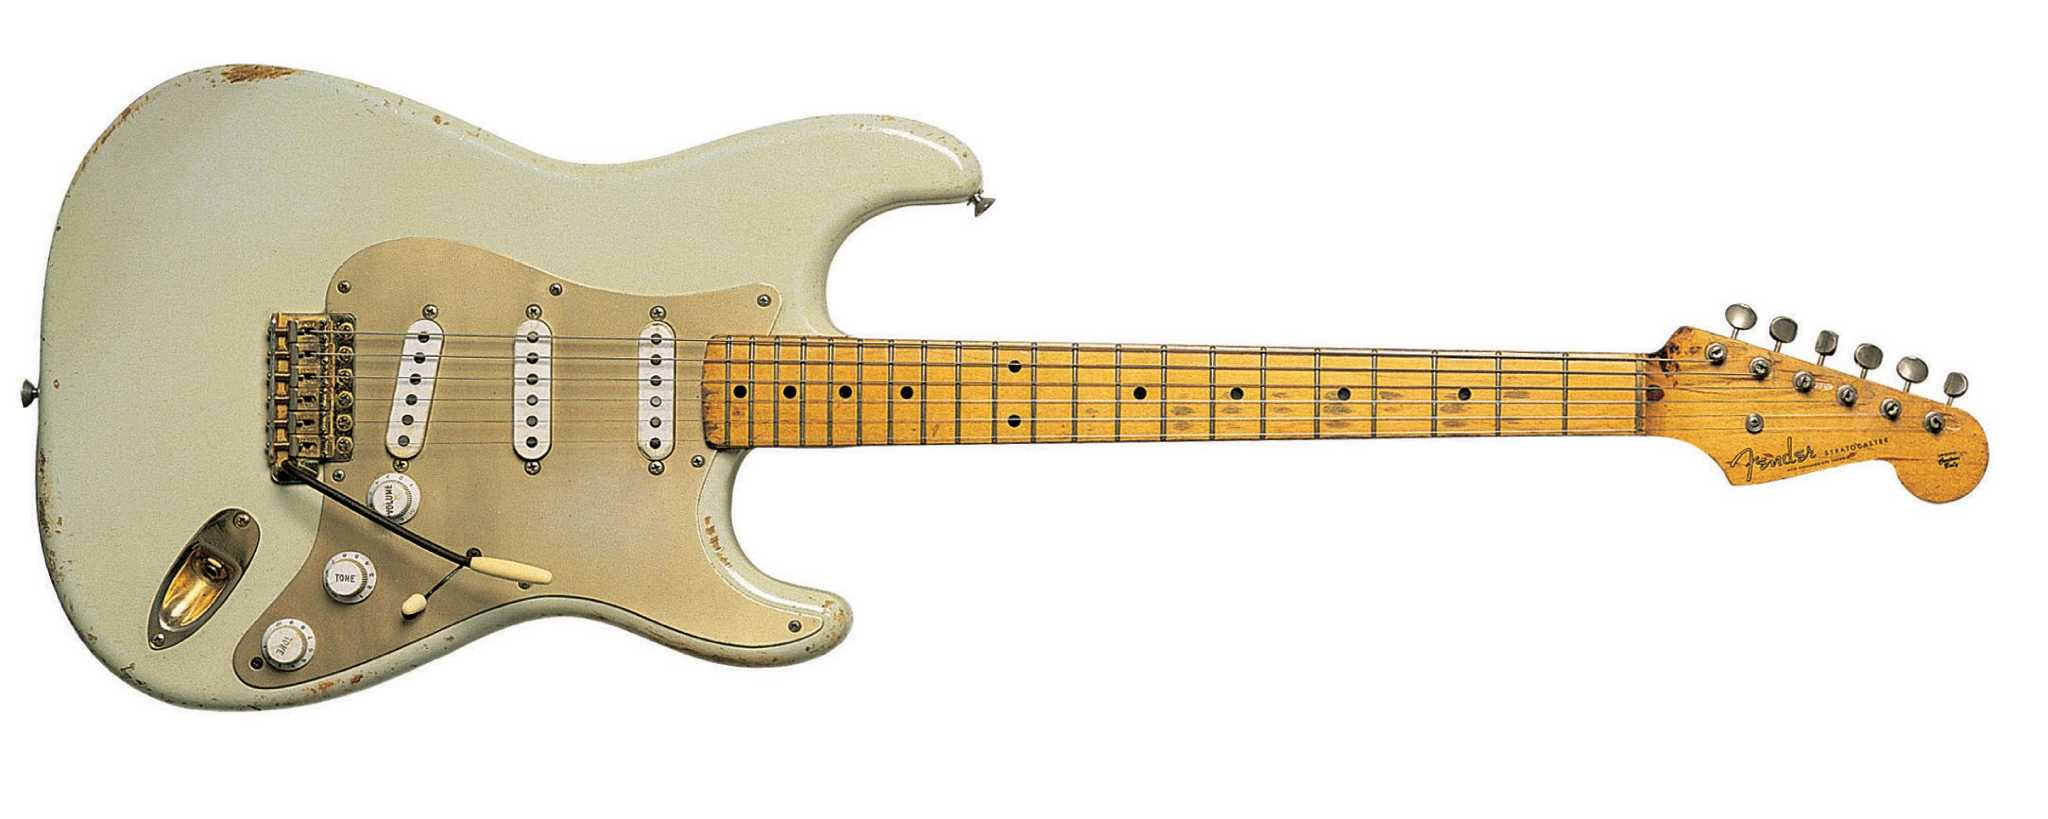 60 Years Of The Fender Stratocaster Seattlepi Com